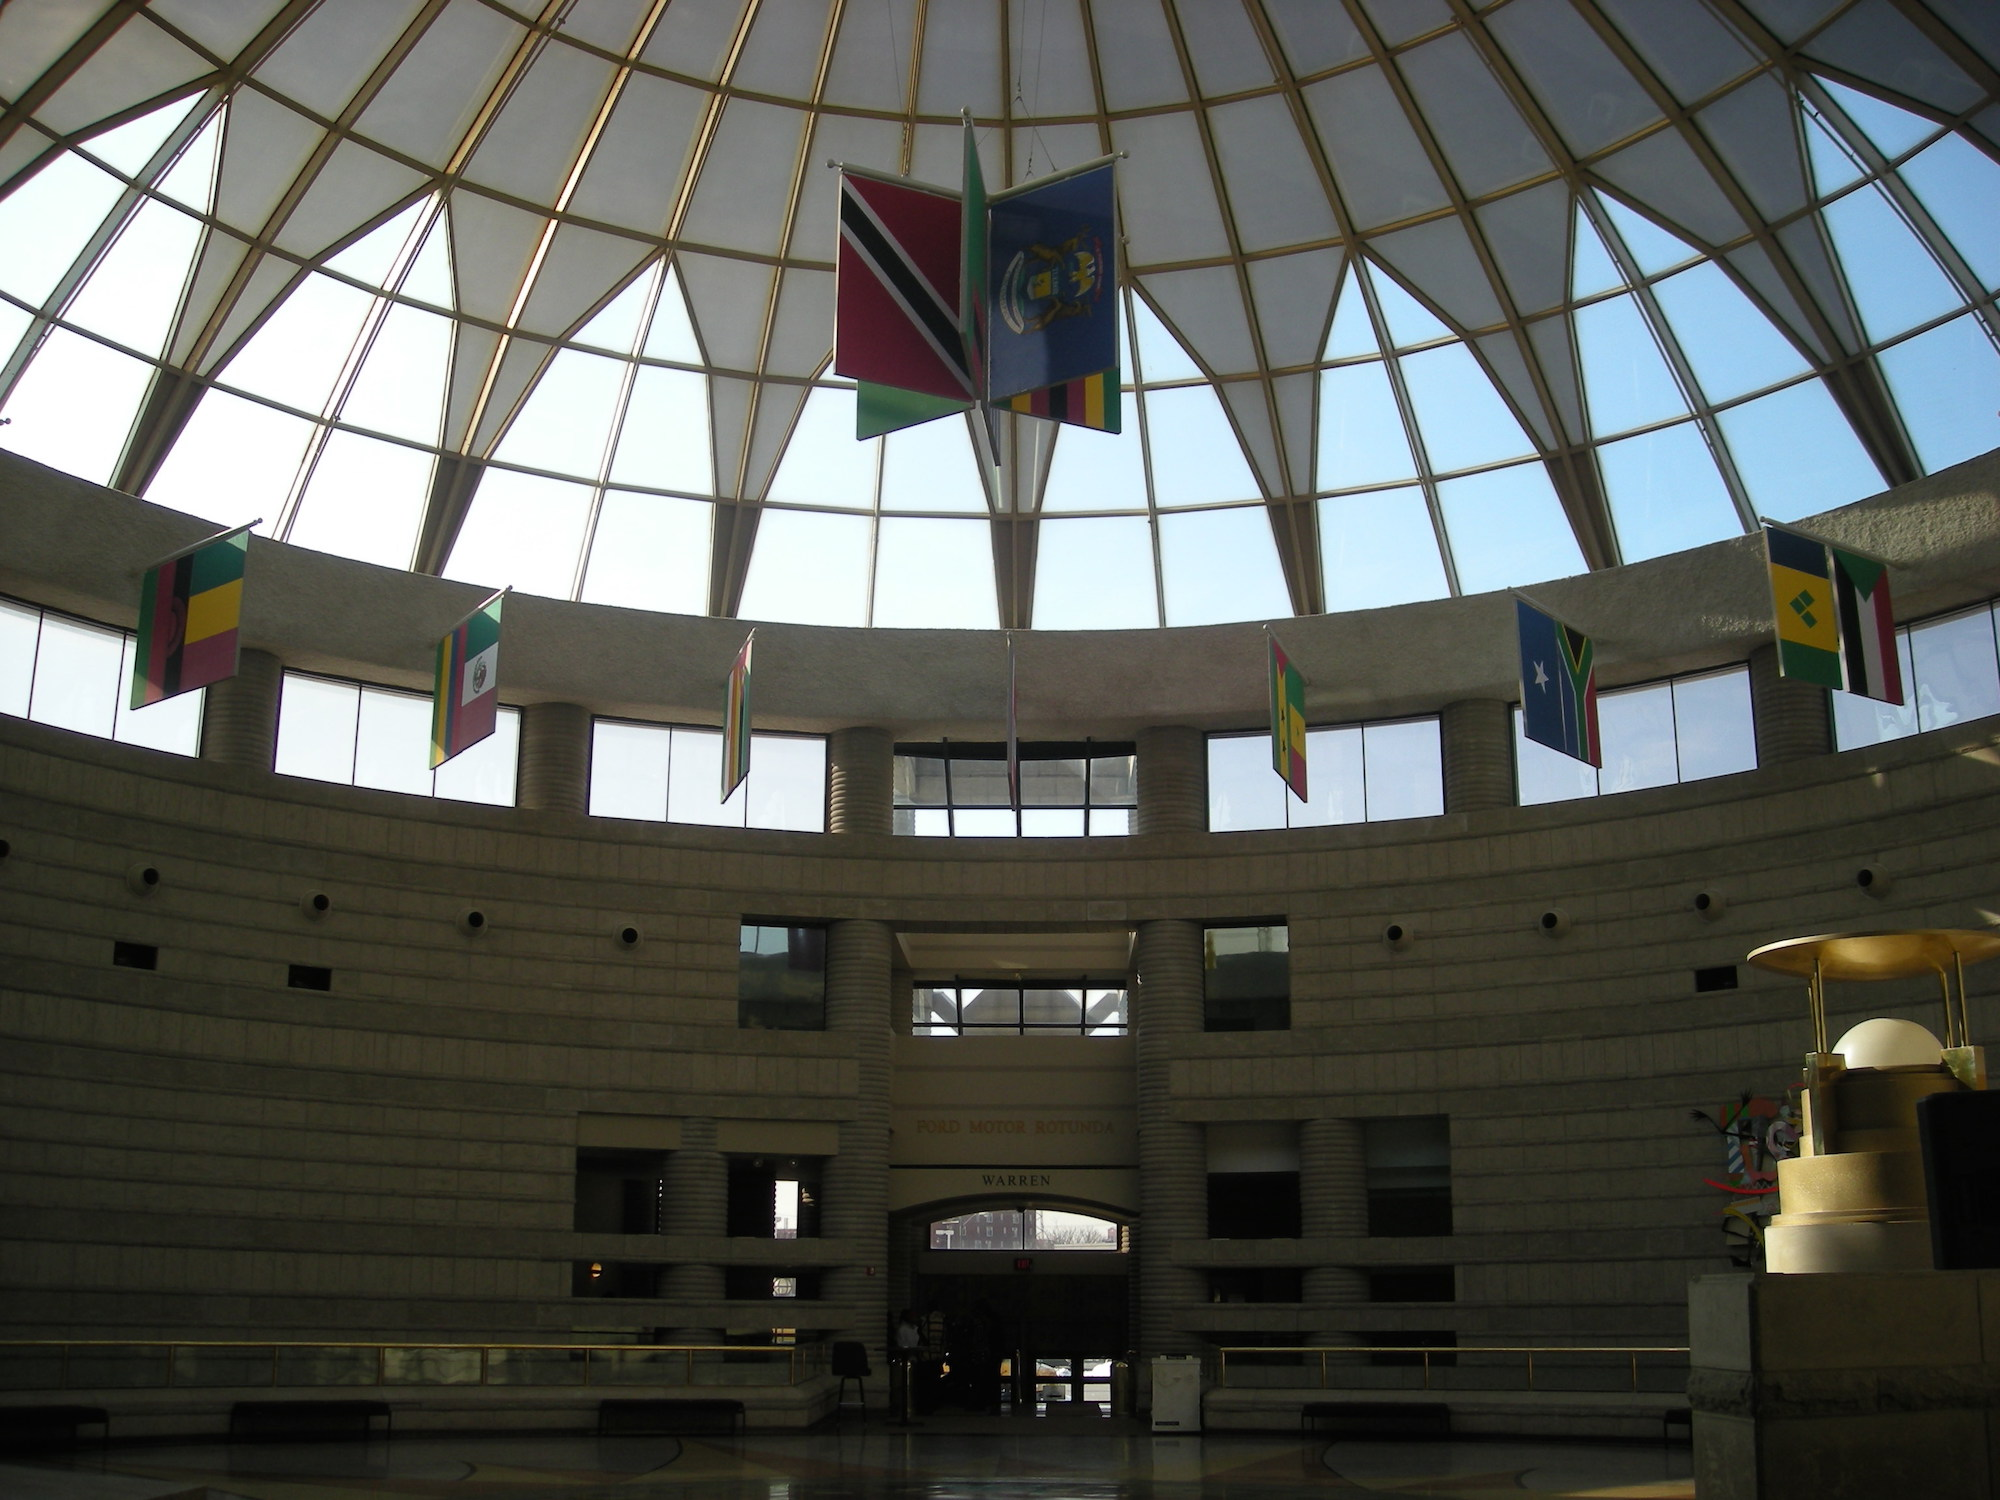 Ford Freedom Rotunda displaying 92 flags representing countries historically involved in the Atlantic slave trade. Photograph by Michael Barera \via wikimedia commons